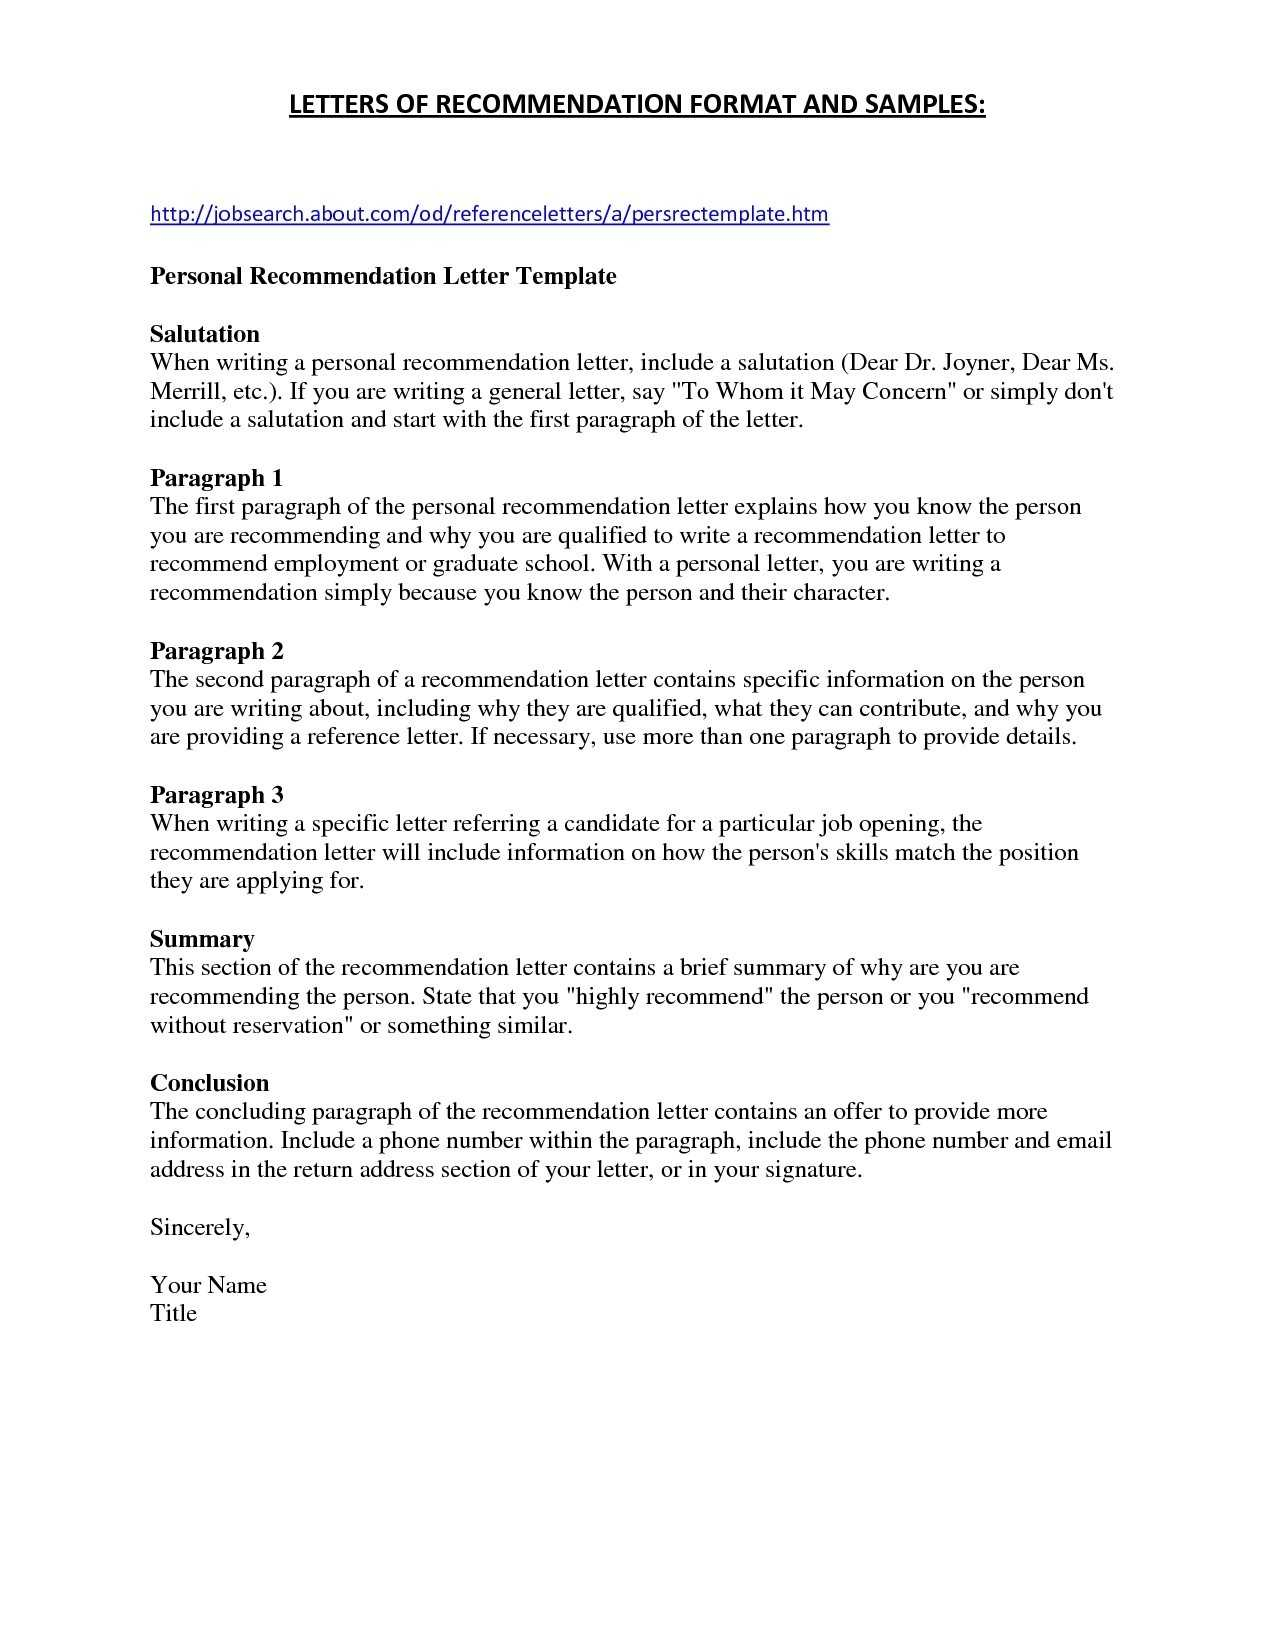 Sample Child Support Letter Template - Child Support Letter Agreement Template Inspirational Letter